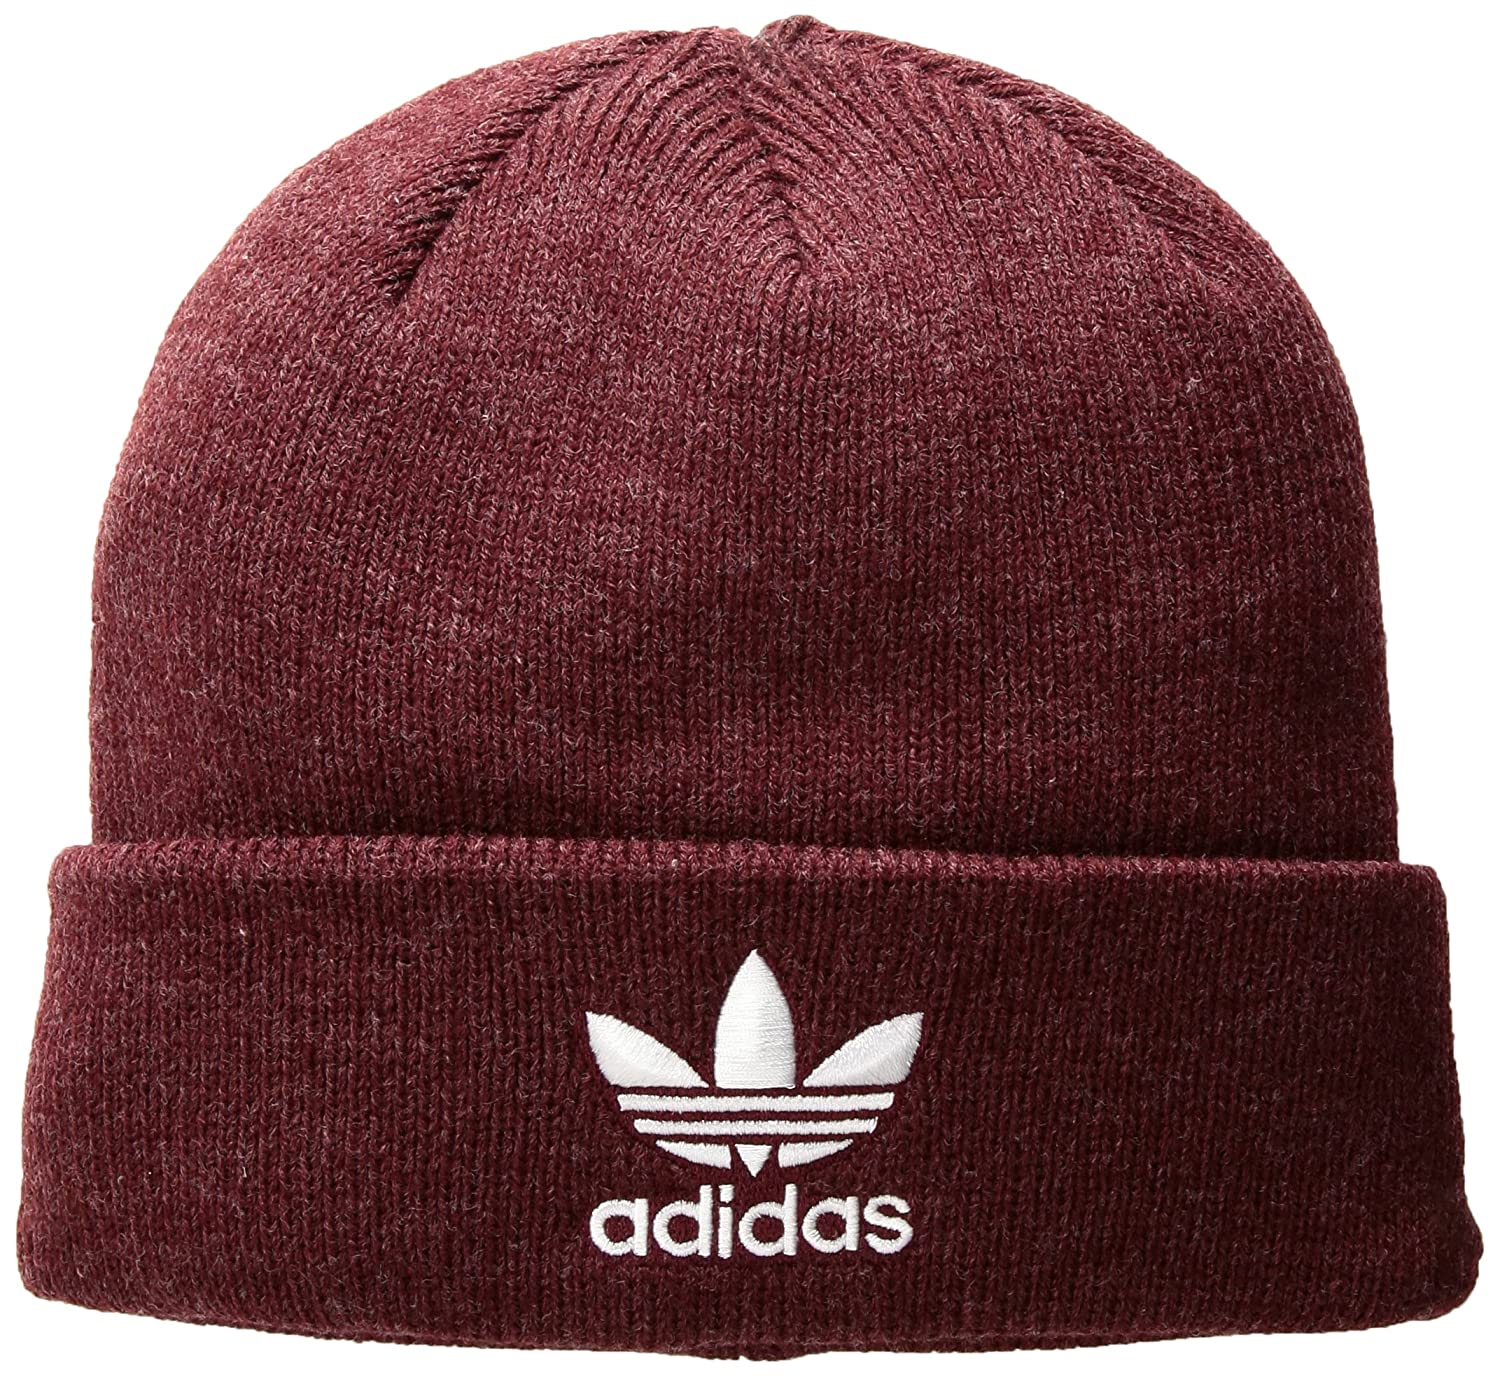 adidas Men's Originals Trefoil II Knit Beanie Agron Hats & Accessories 976050